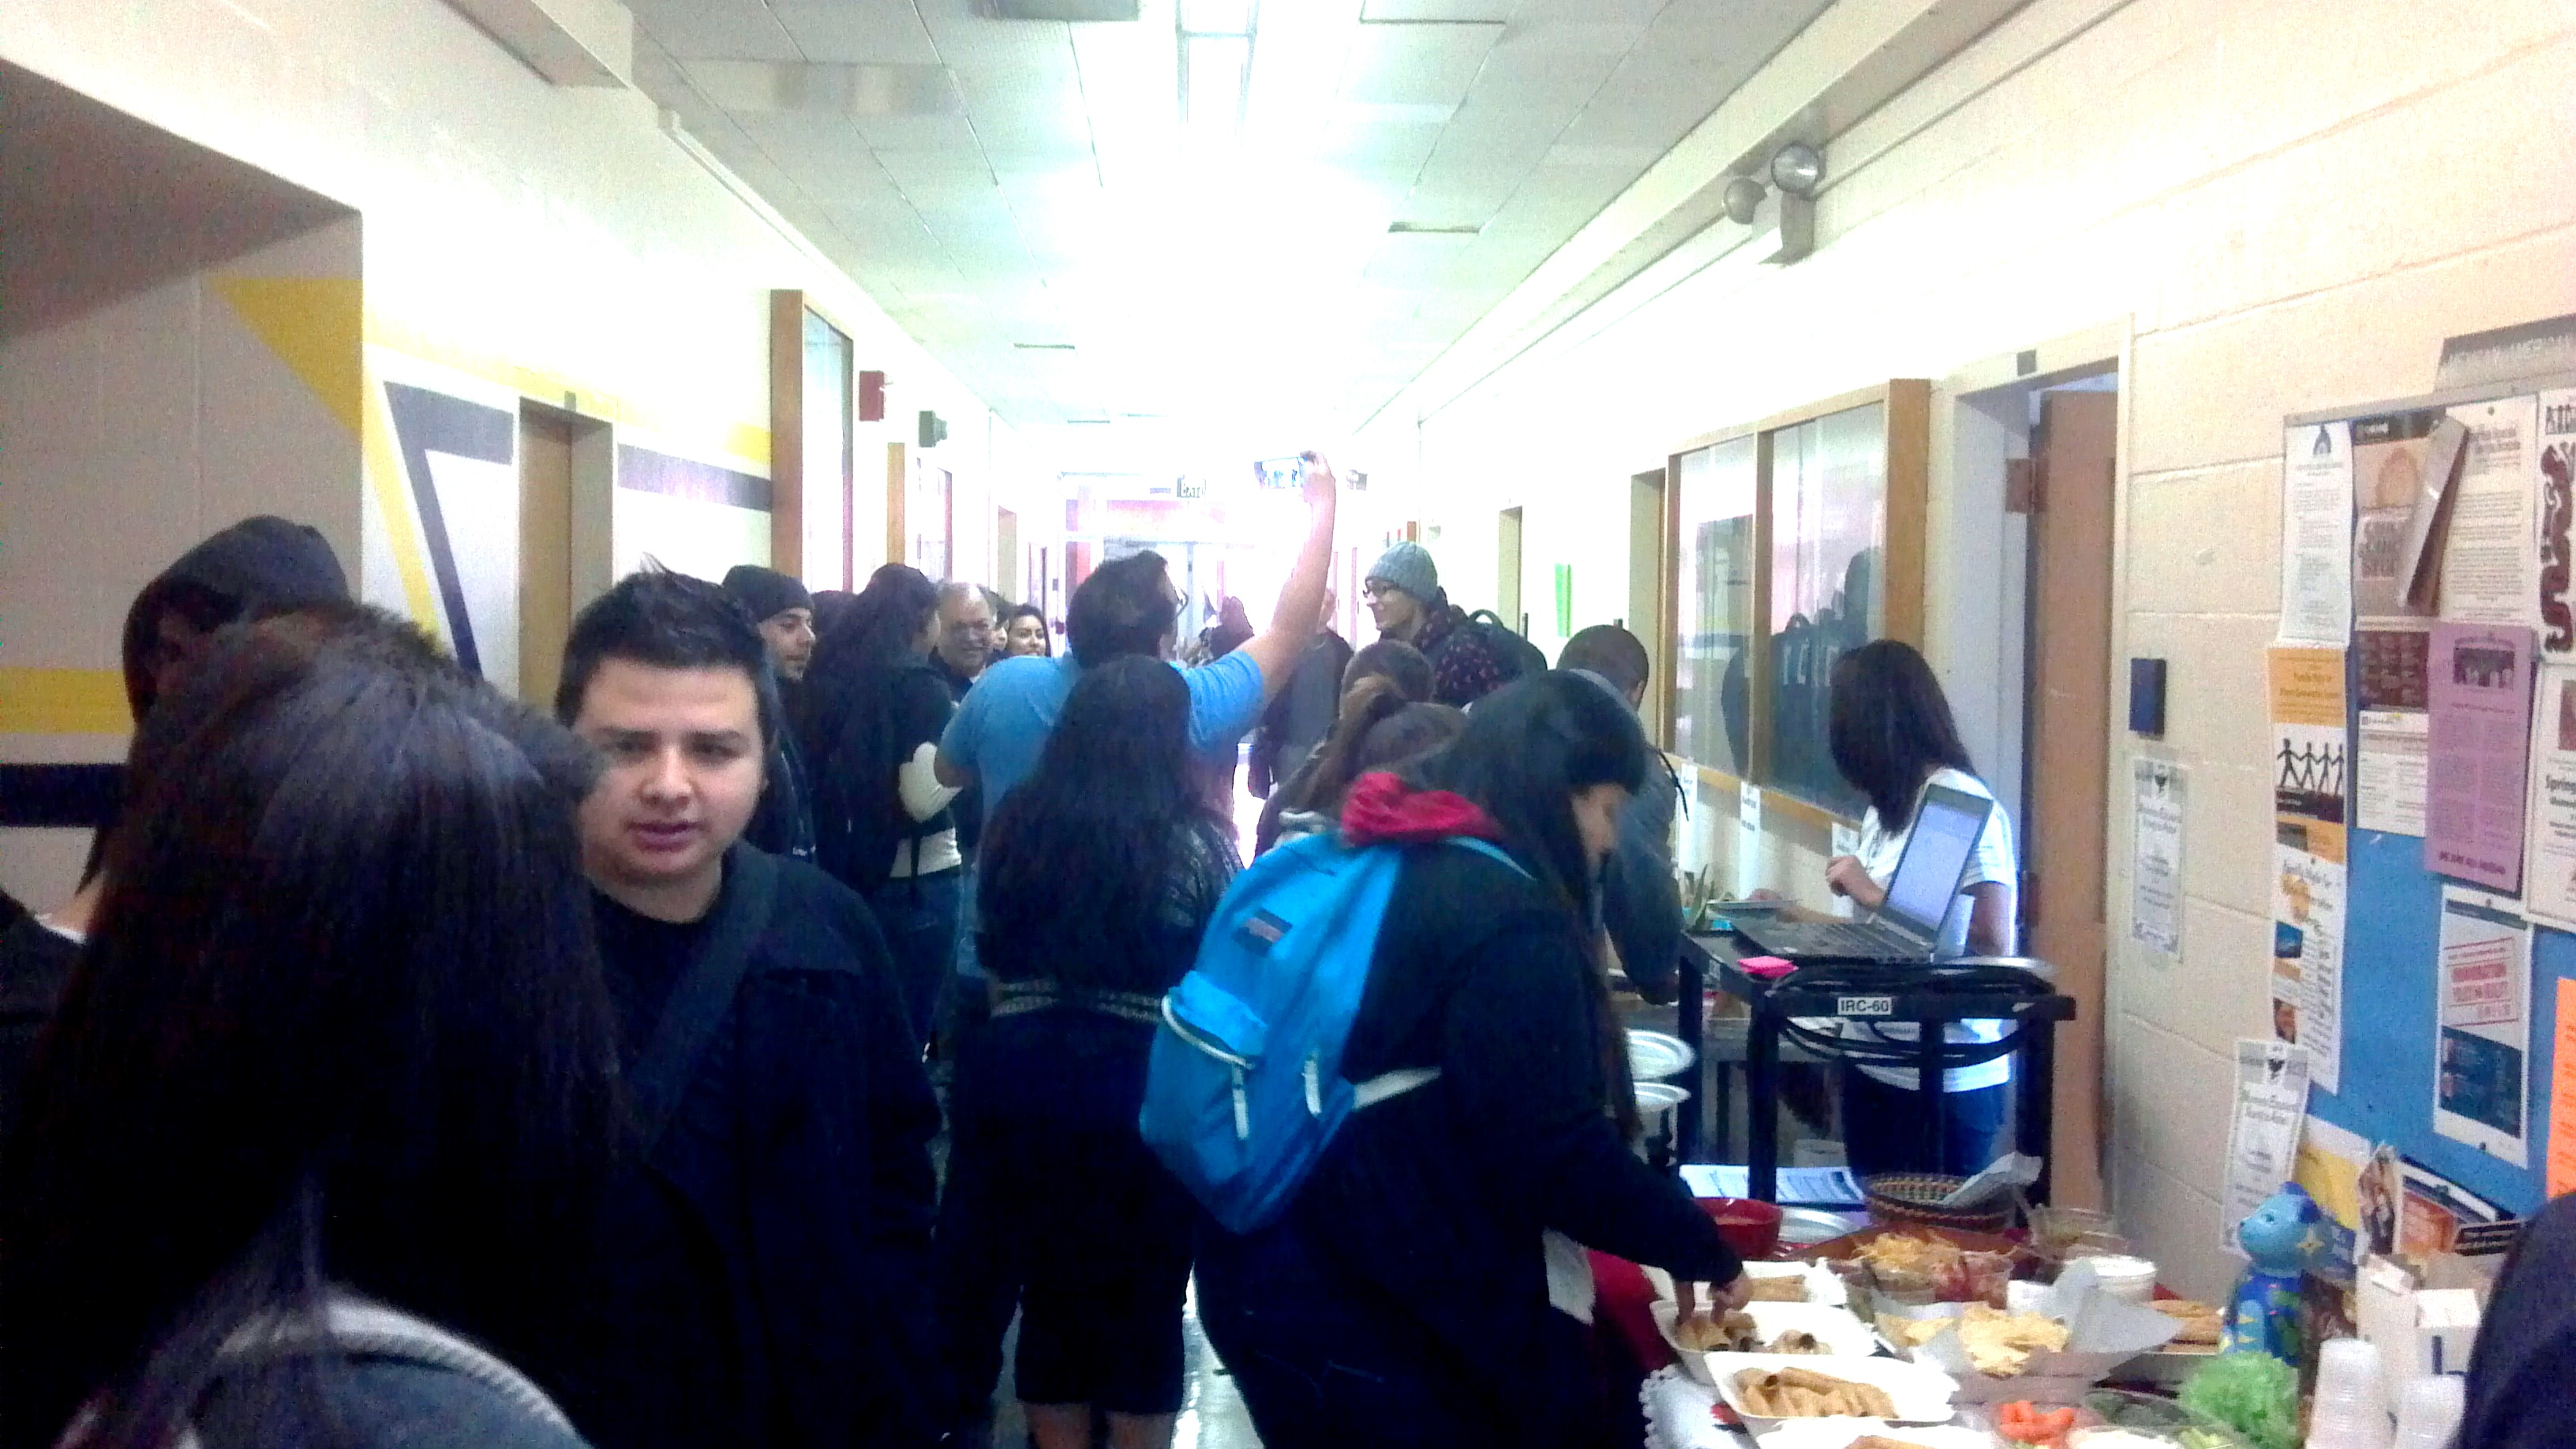 MAS Welcome Hallway with students